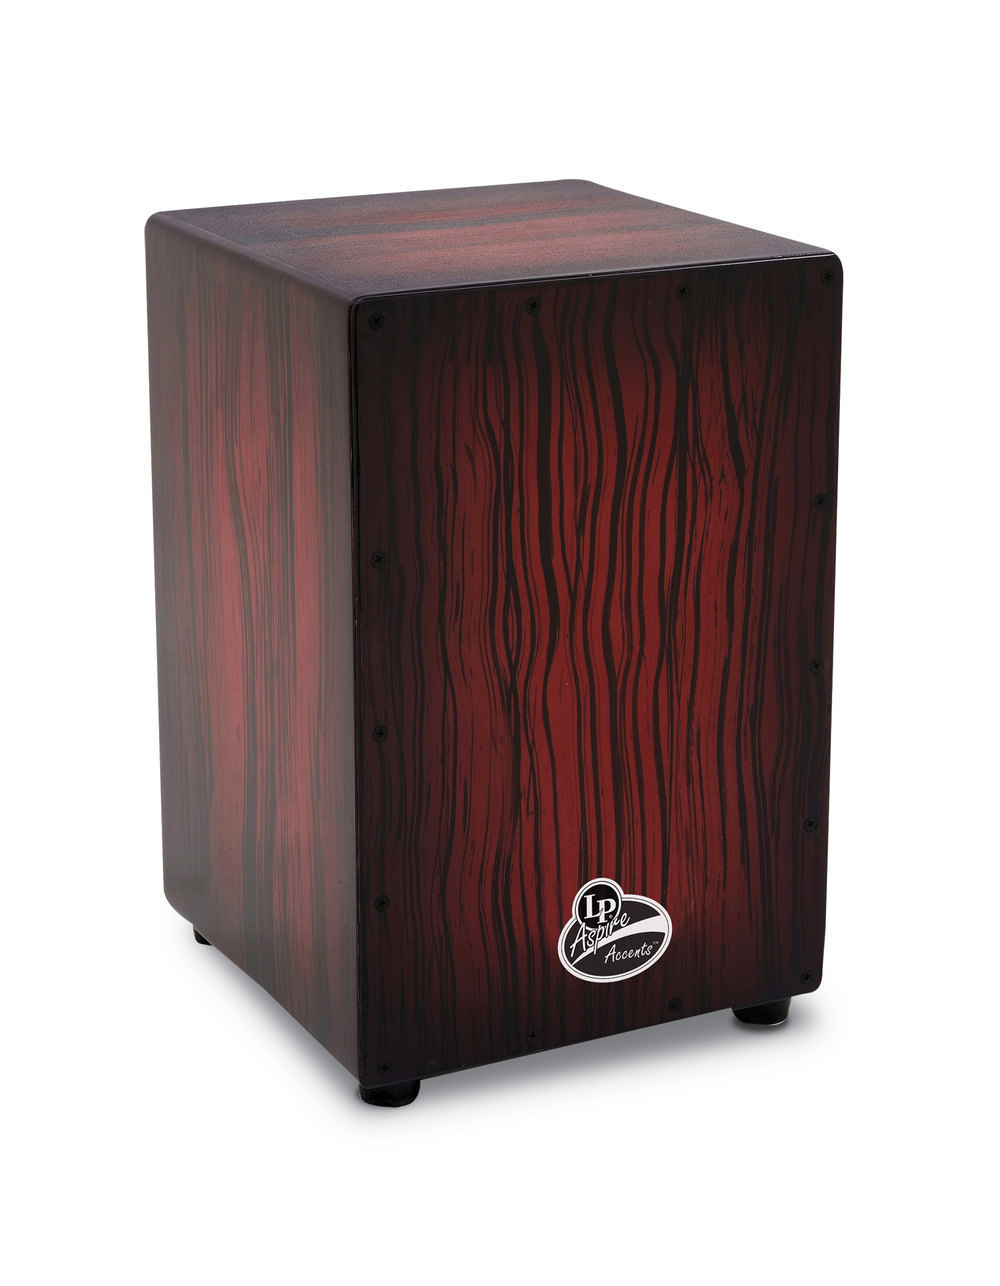 Image of   LP Aspire Accents Dark Wood Streak Cajon